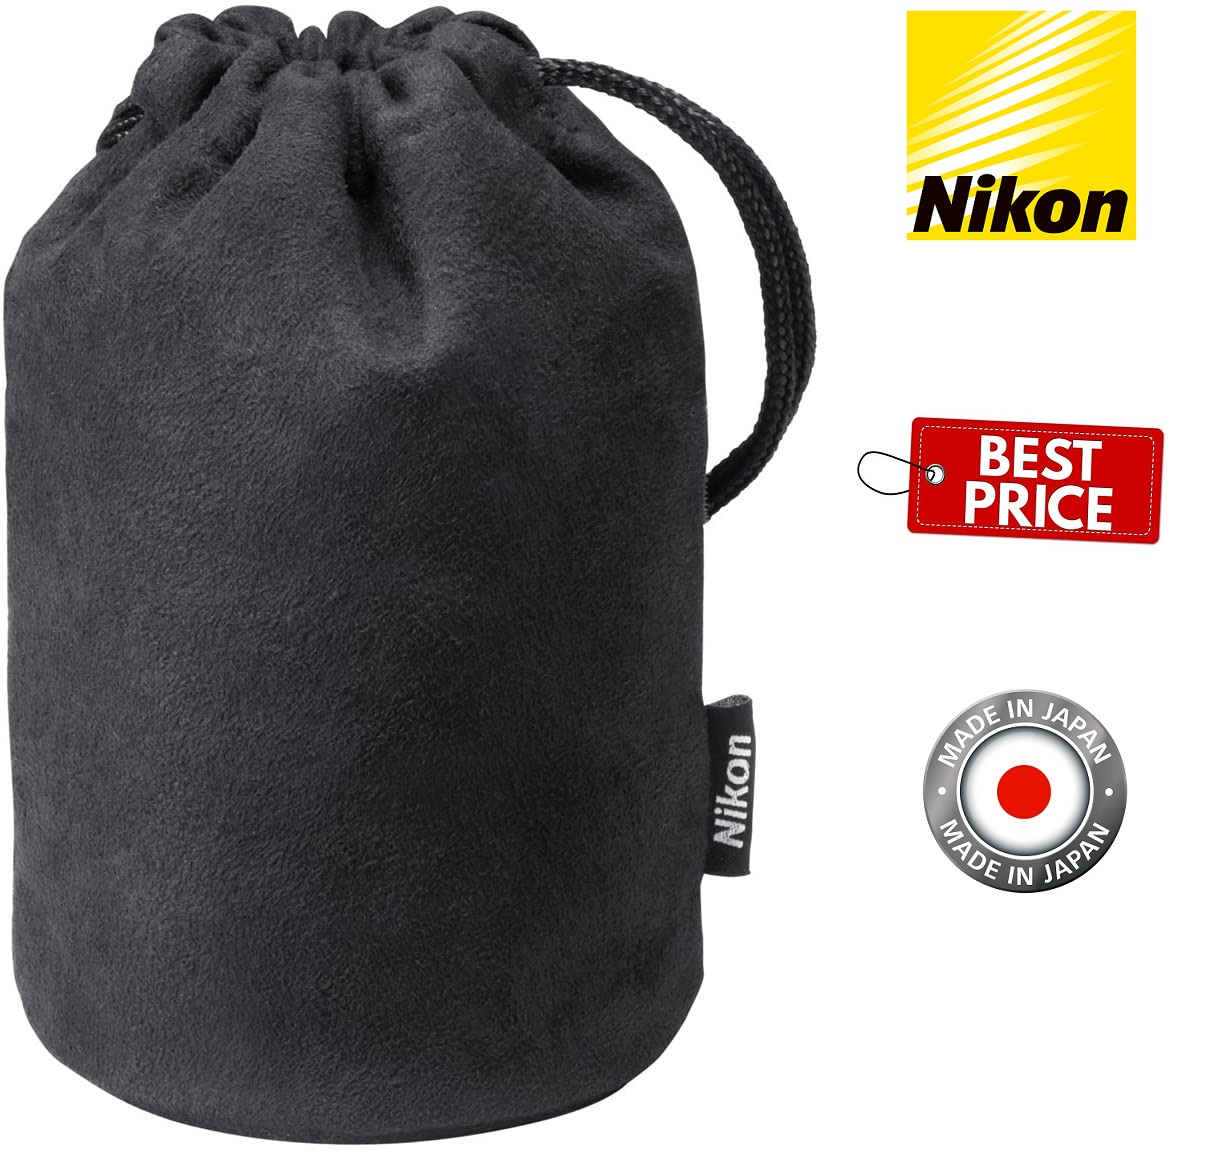 Nikon CL-1018 Soft Lens Case for Nikon 18-200mm ED IF DX VR Lens